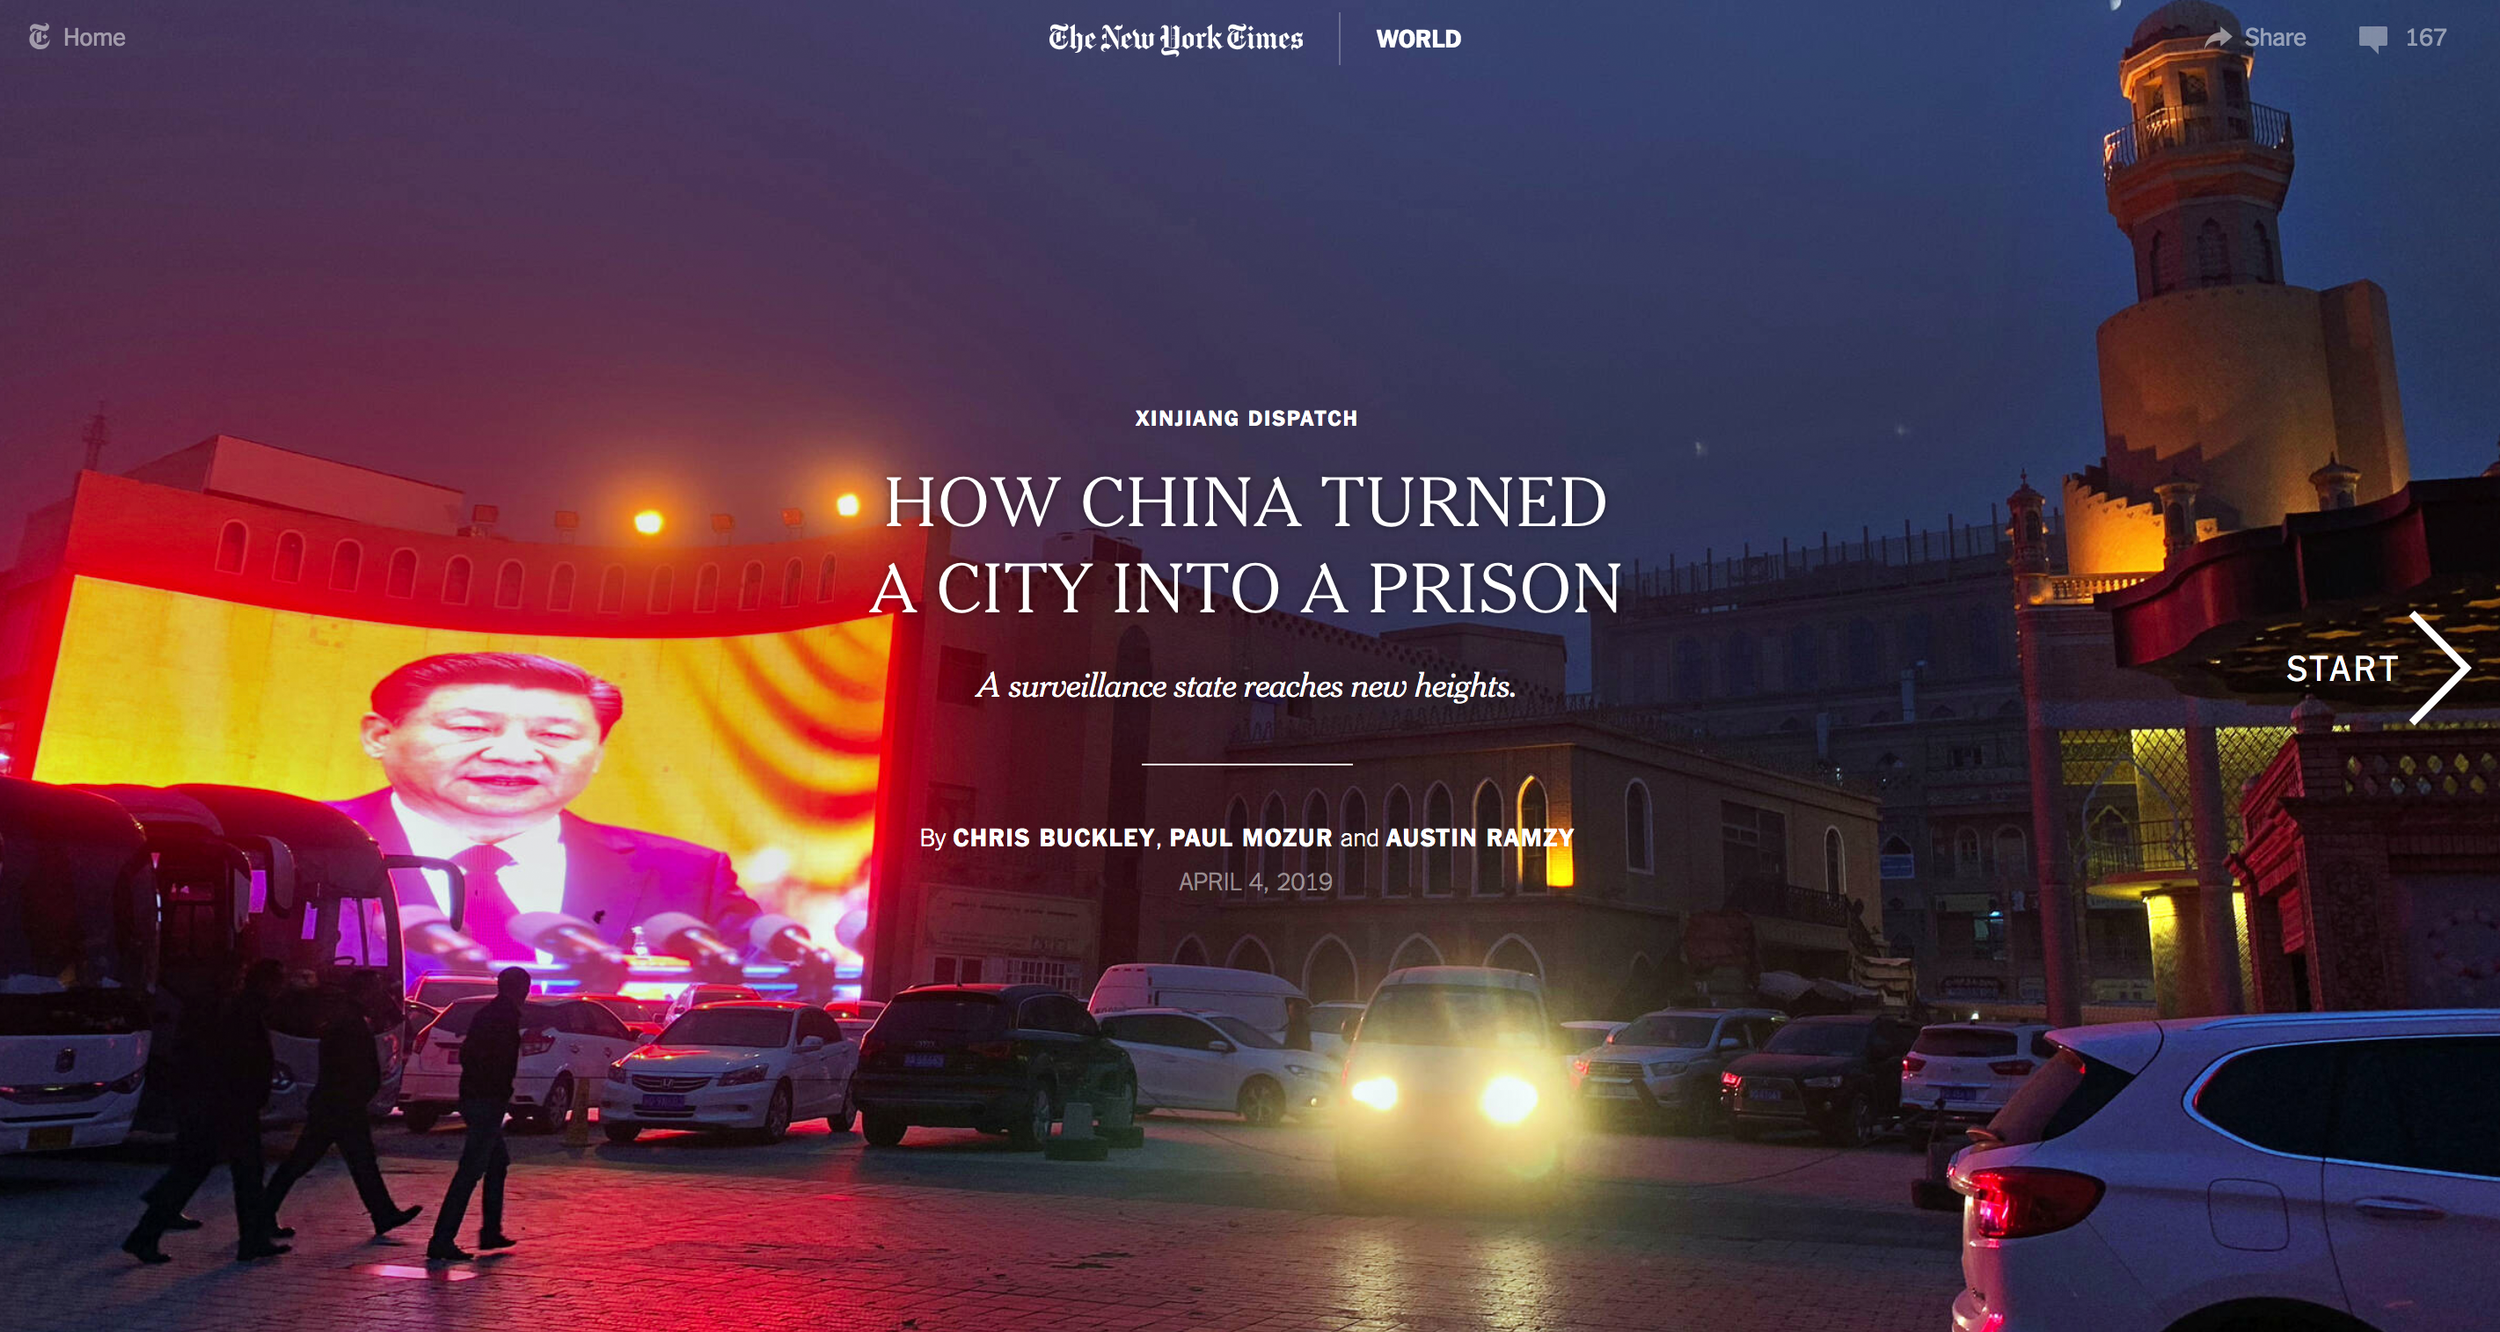 https://www.nytimes.com/interactive/2019/04/04/world/asia/xinjiang-china-surveillance-prison.html